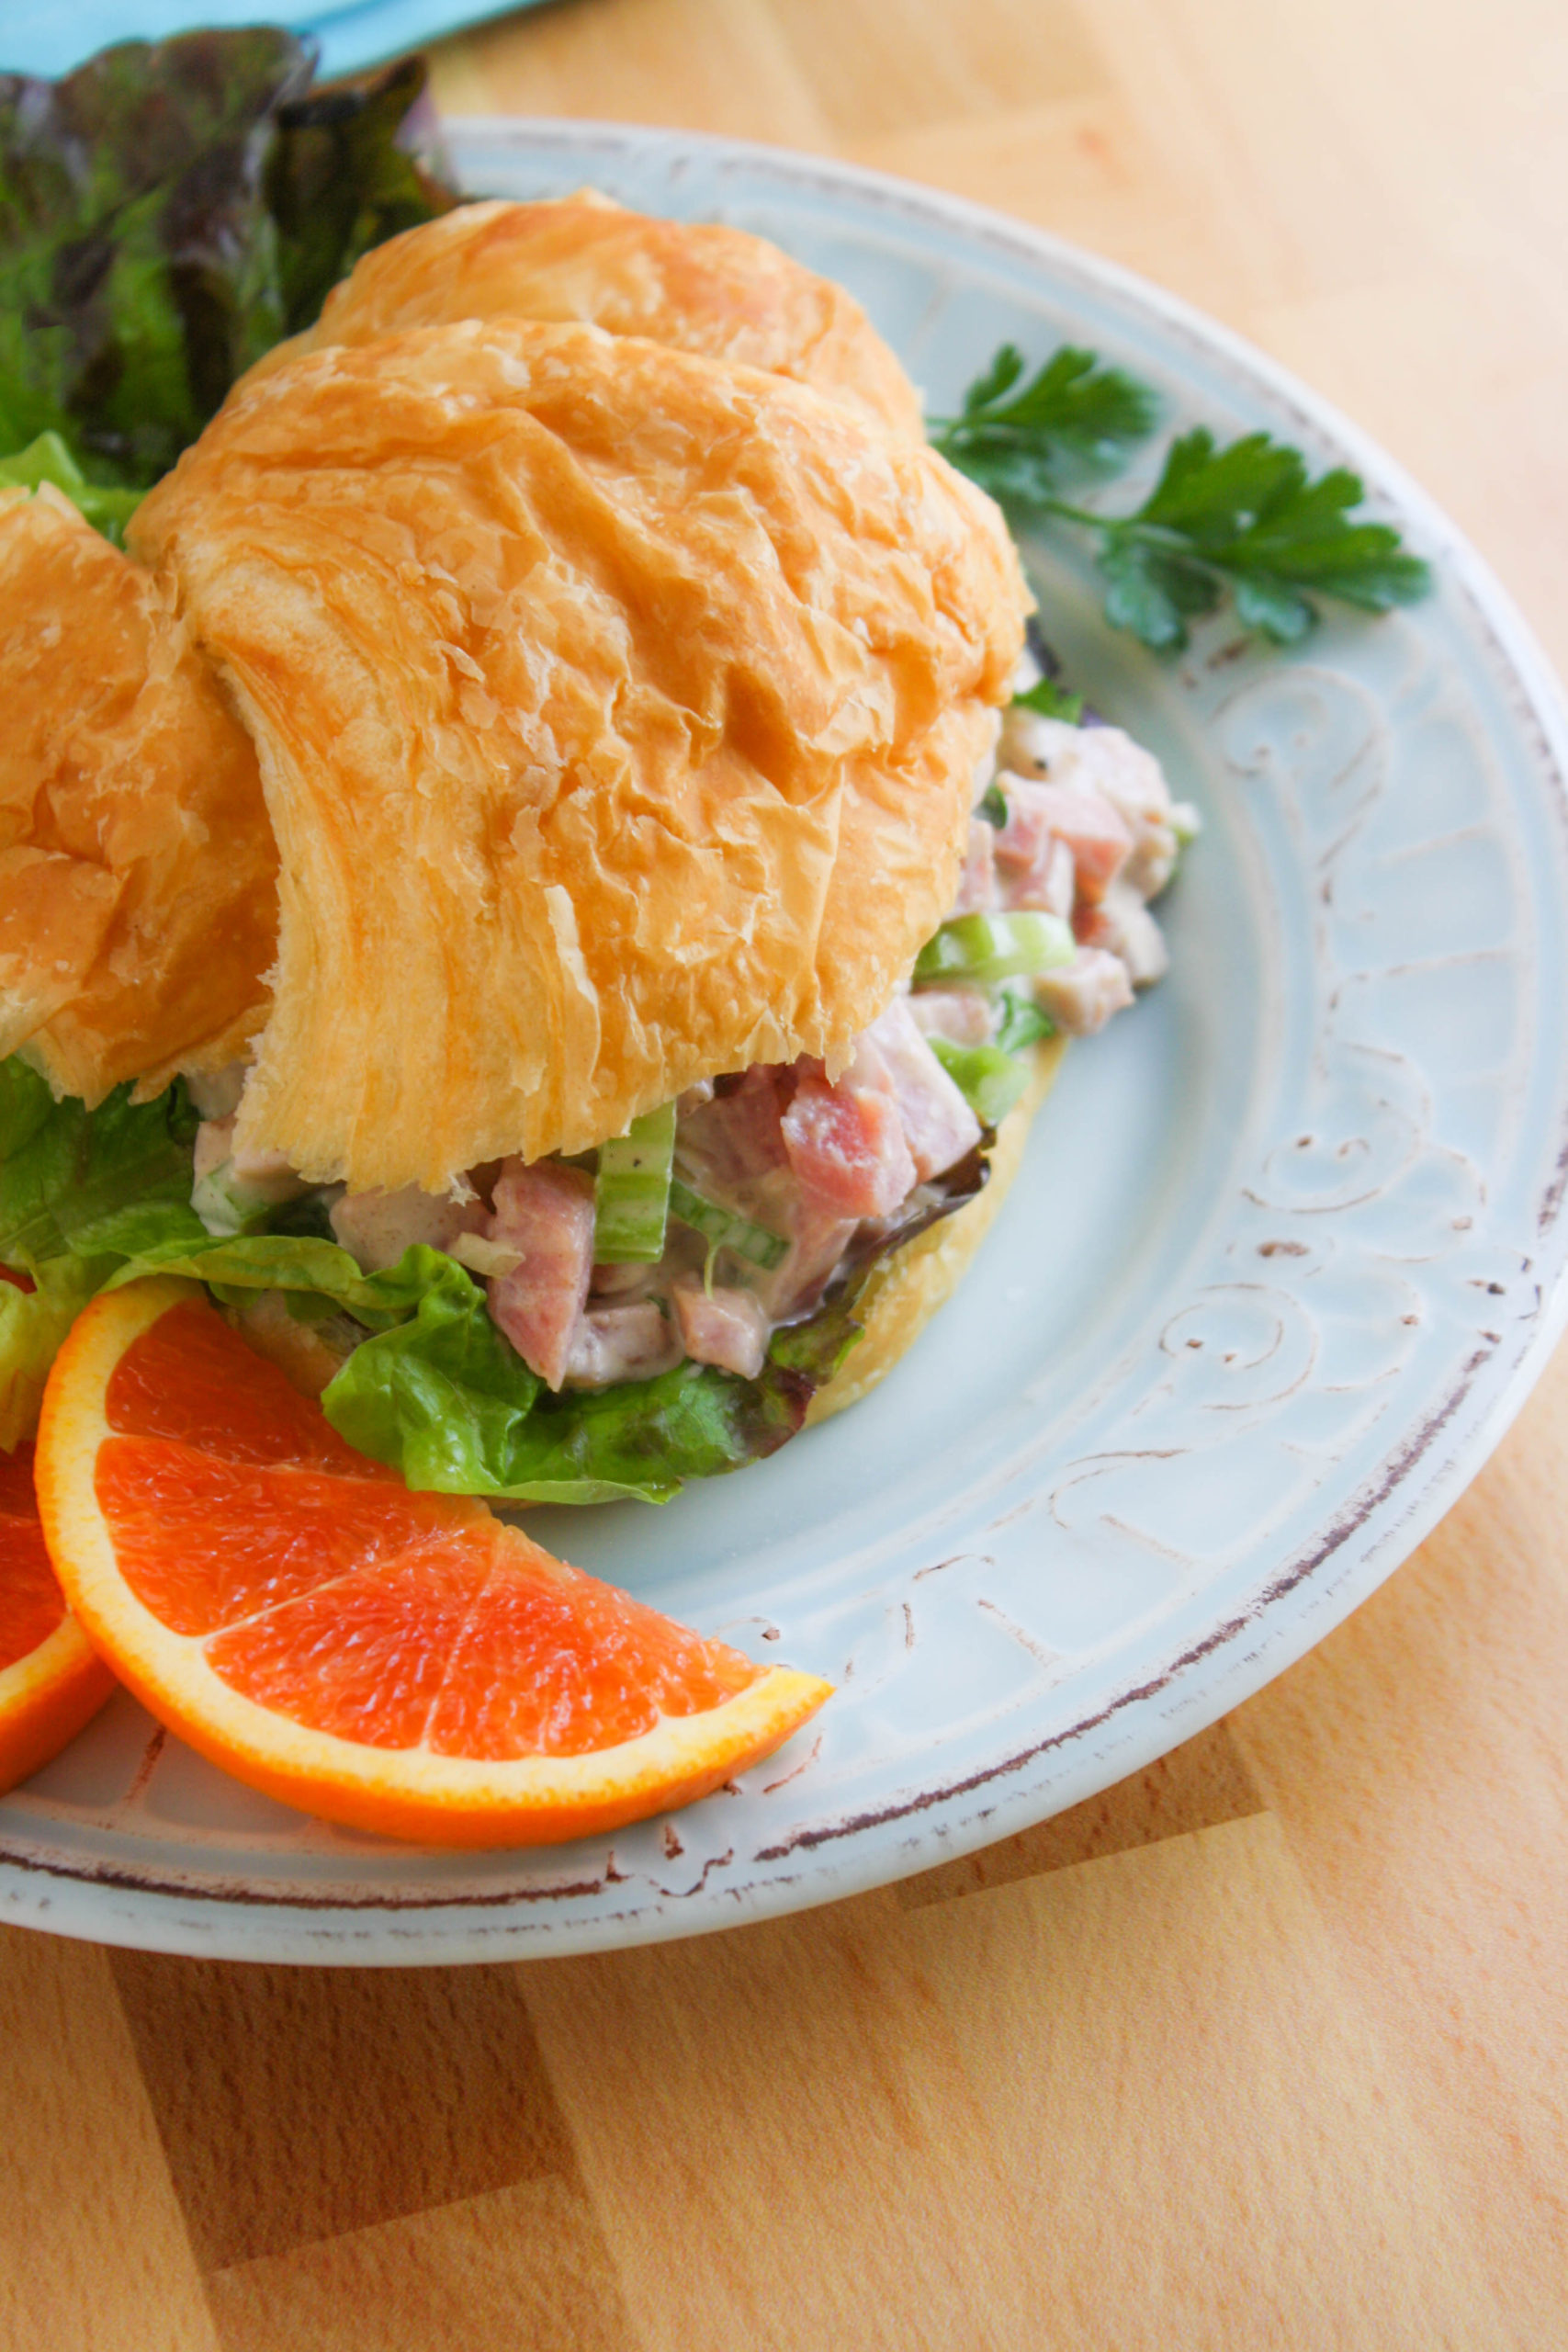 Ham Salad on a croissant is a great meal.